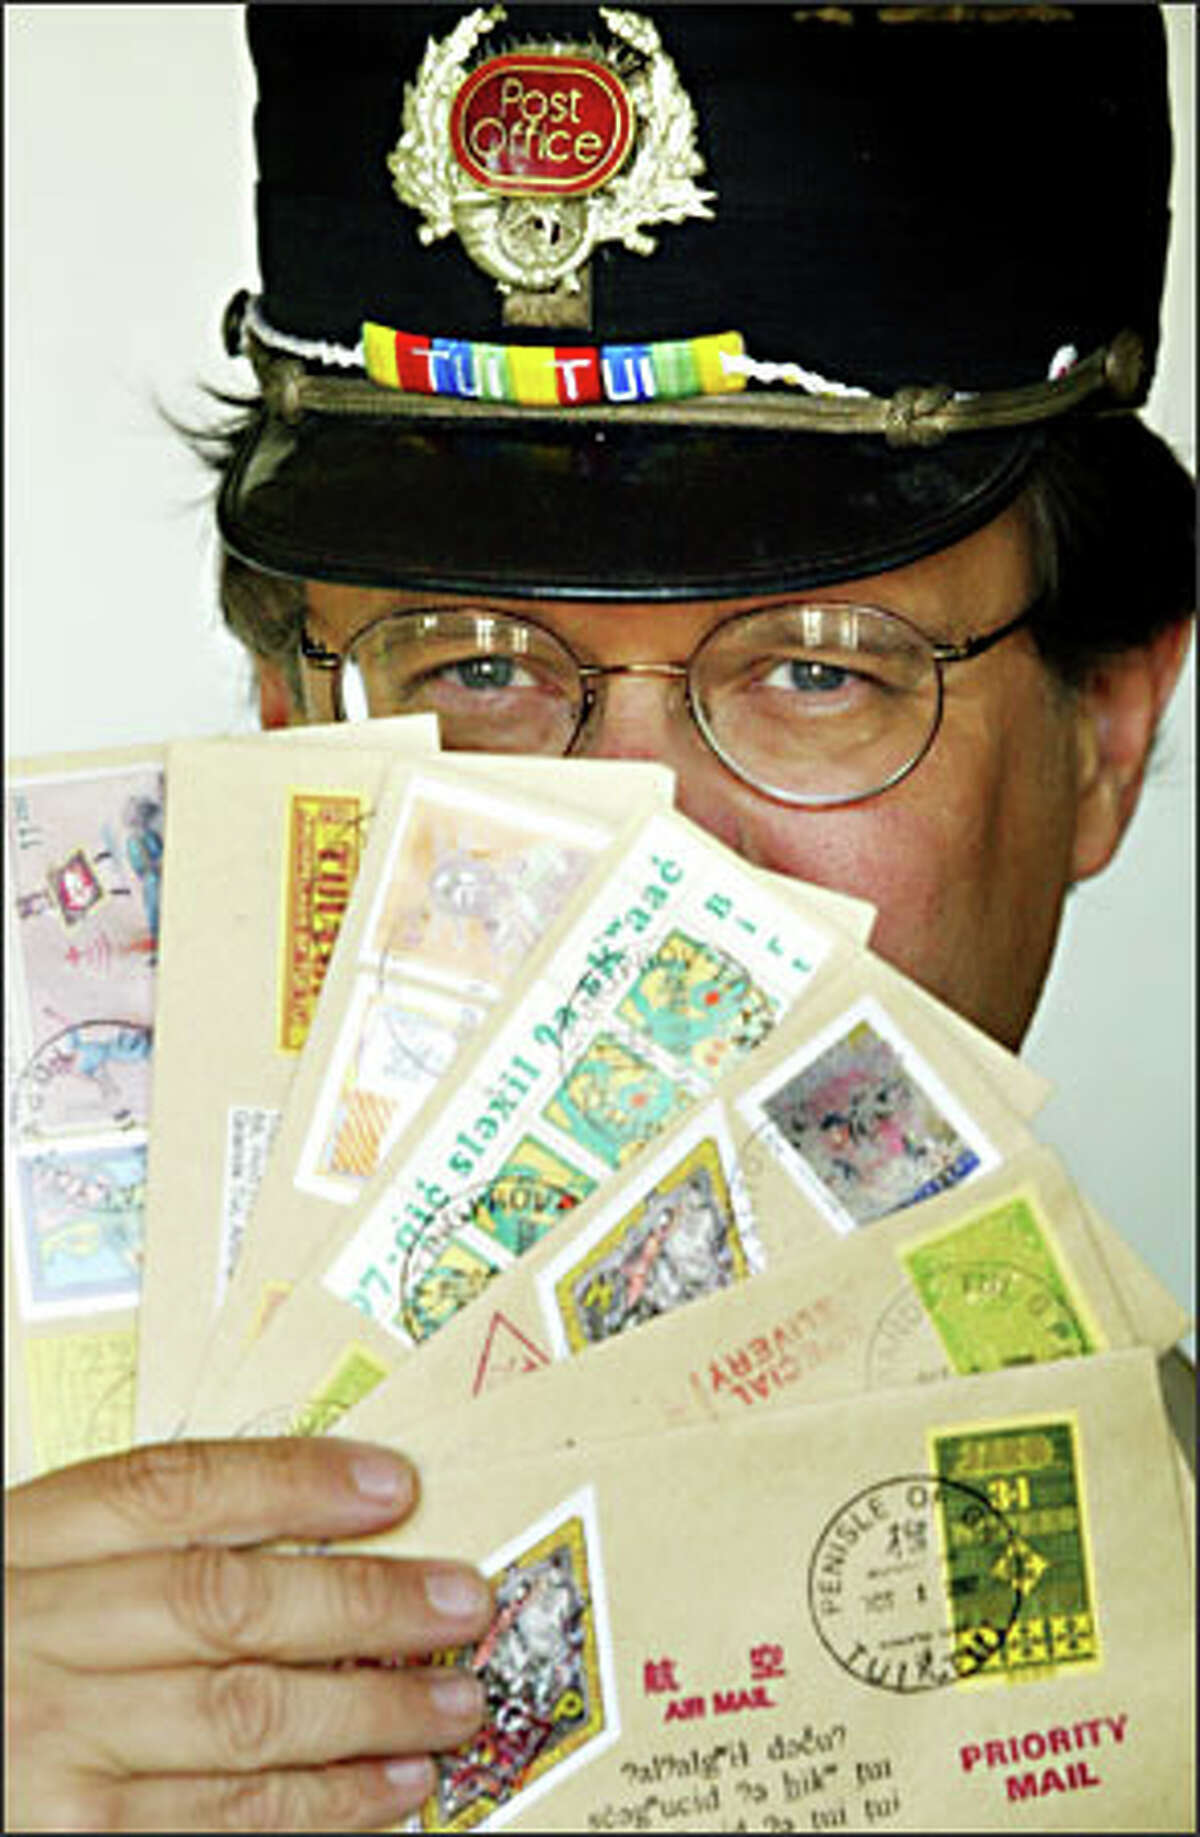 Robert Rudine's stamps are used in a postal system he created to deliver rent payments and other correspondence between buildings he owns in Seattle.